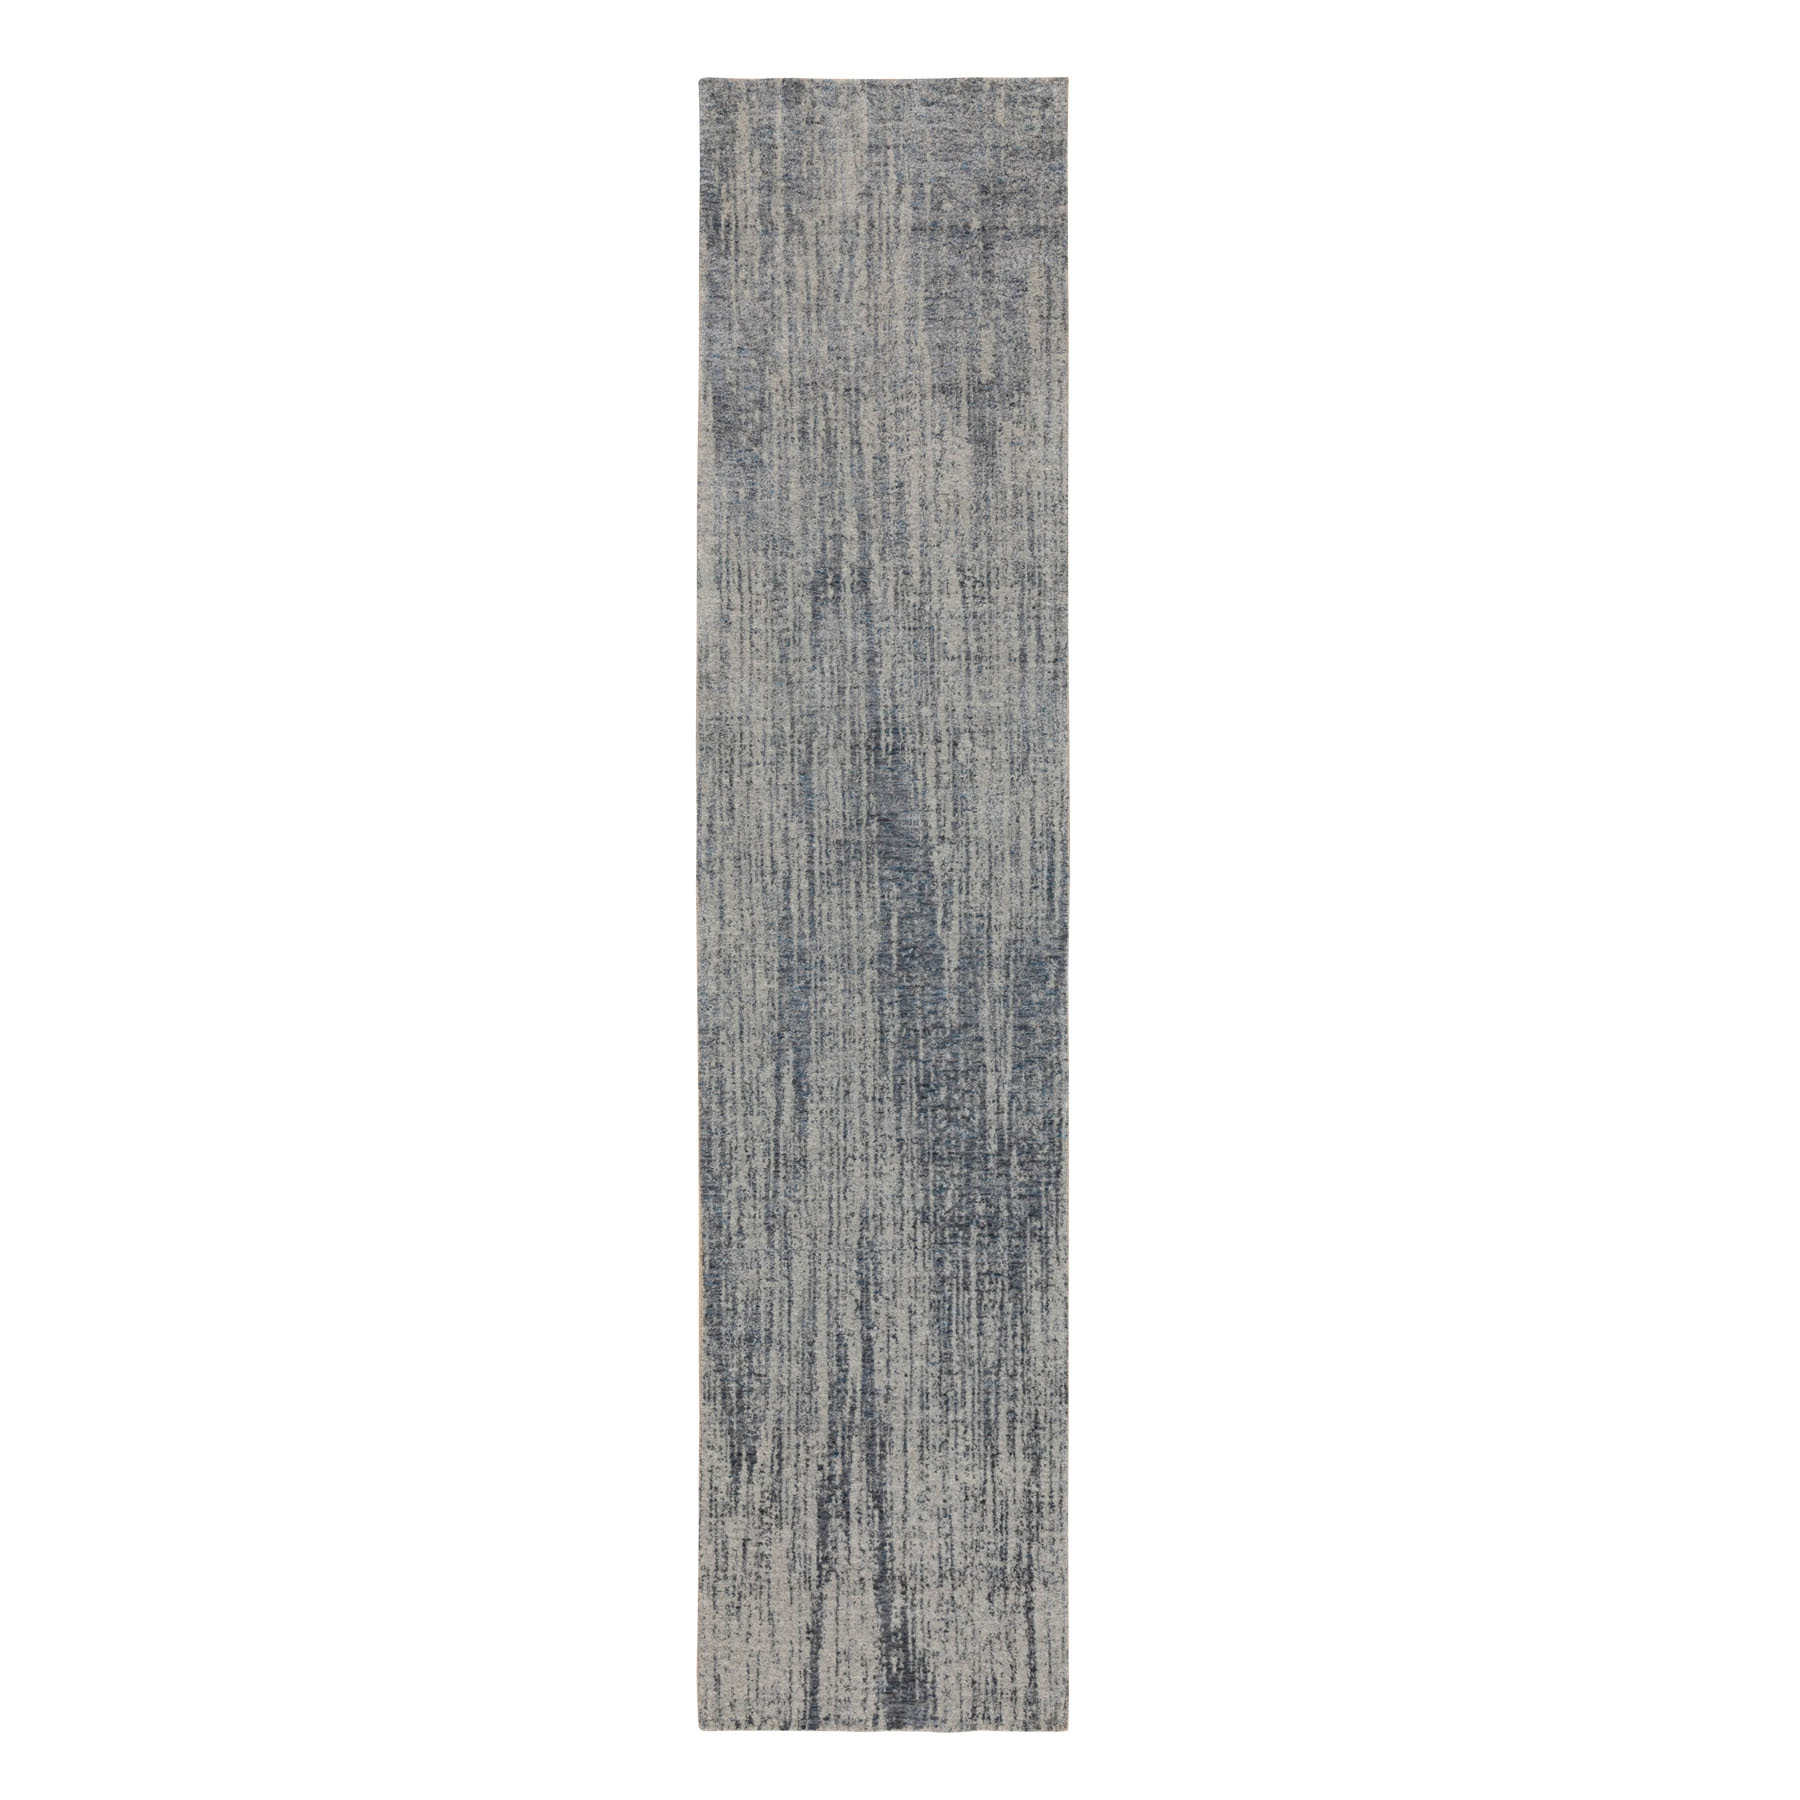 Mid Century Modern Collection Hand Loomed Grey Rug No: 1116840